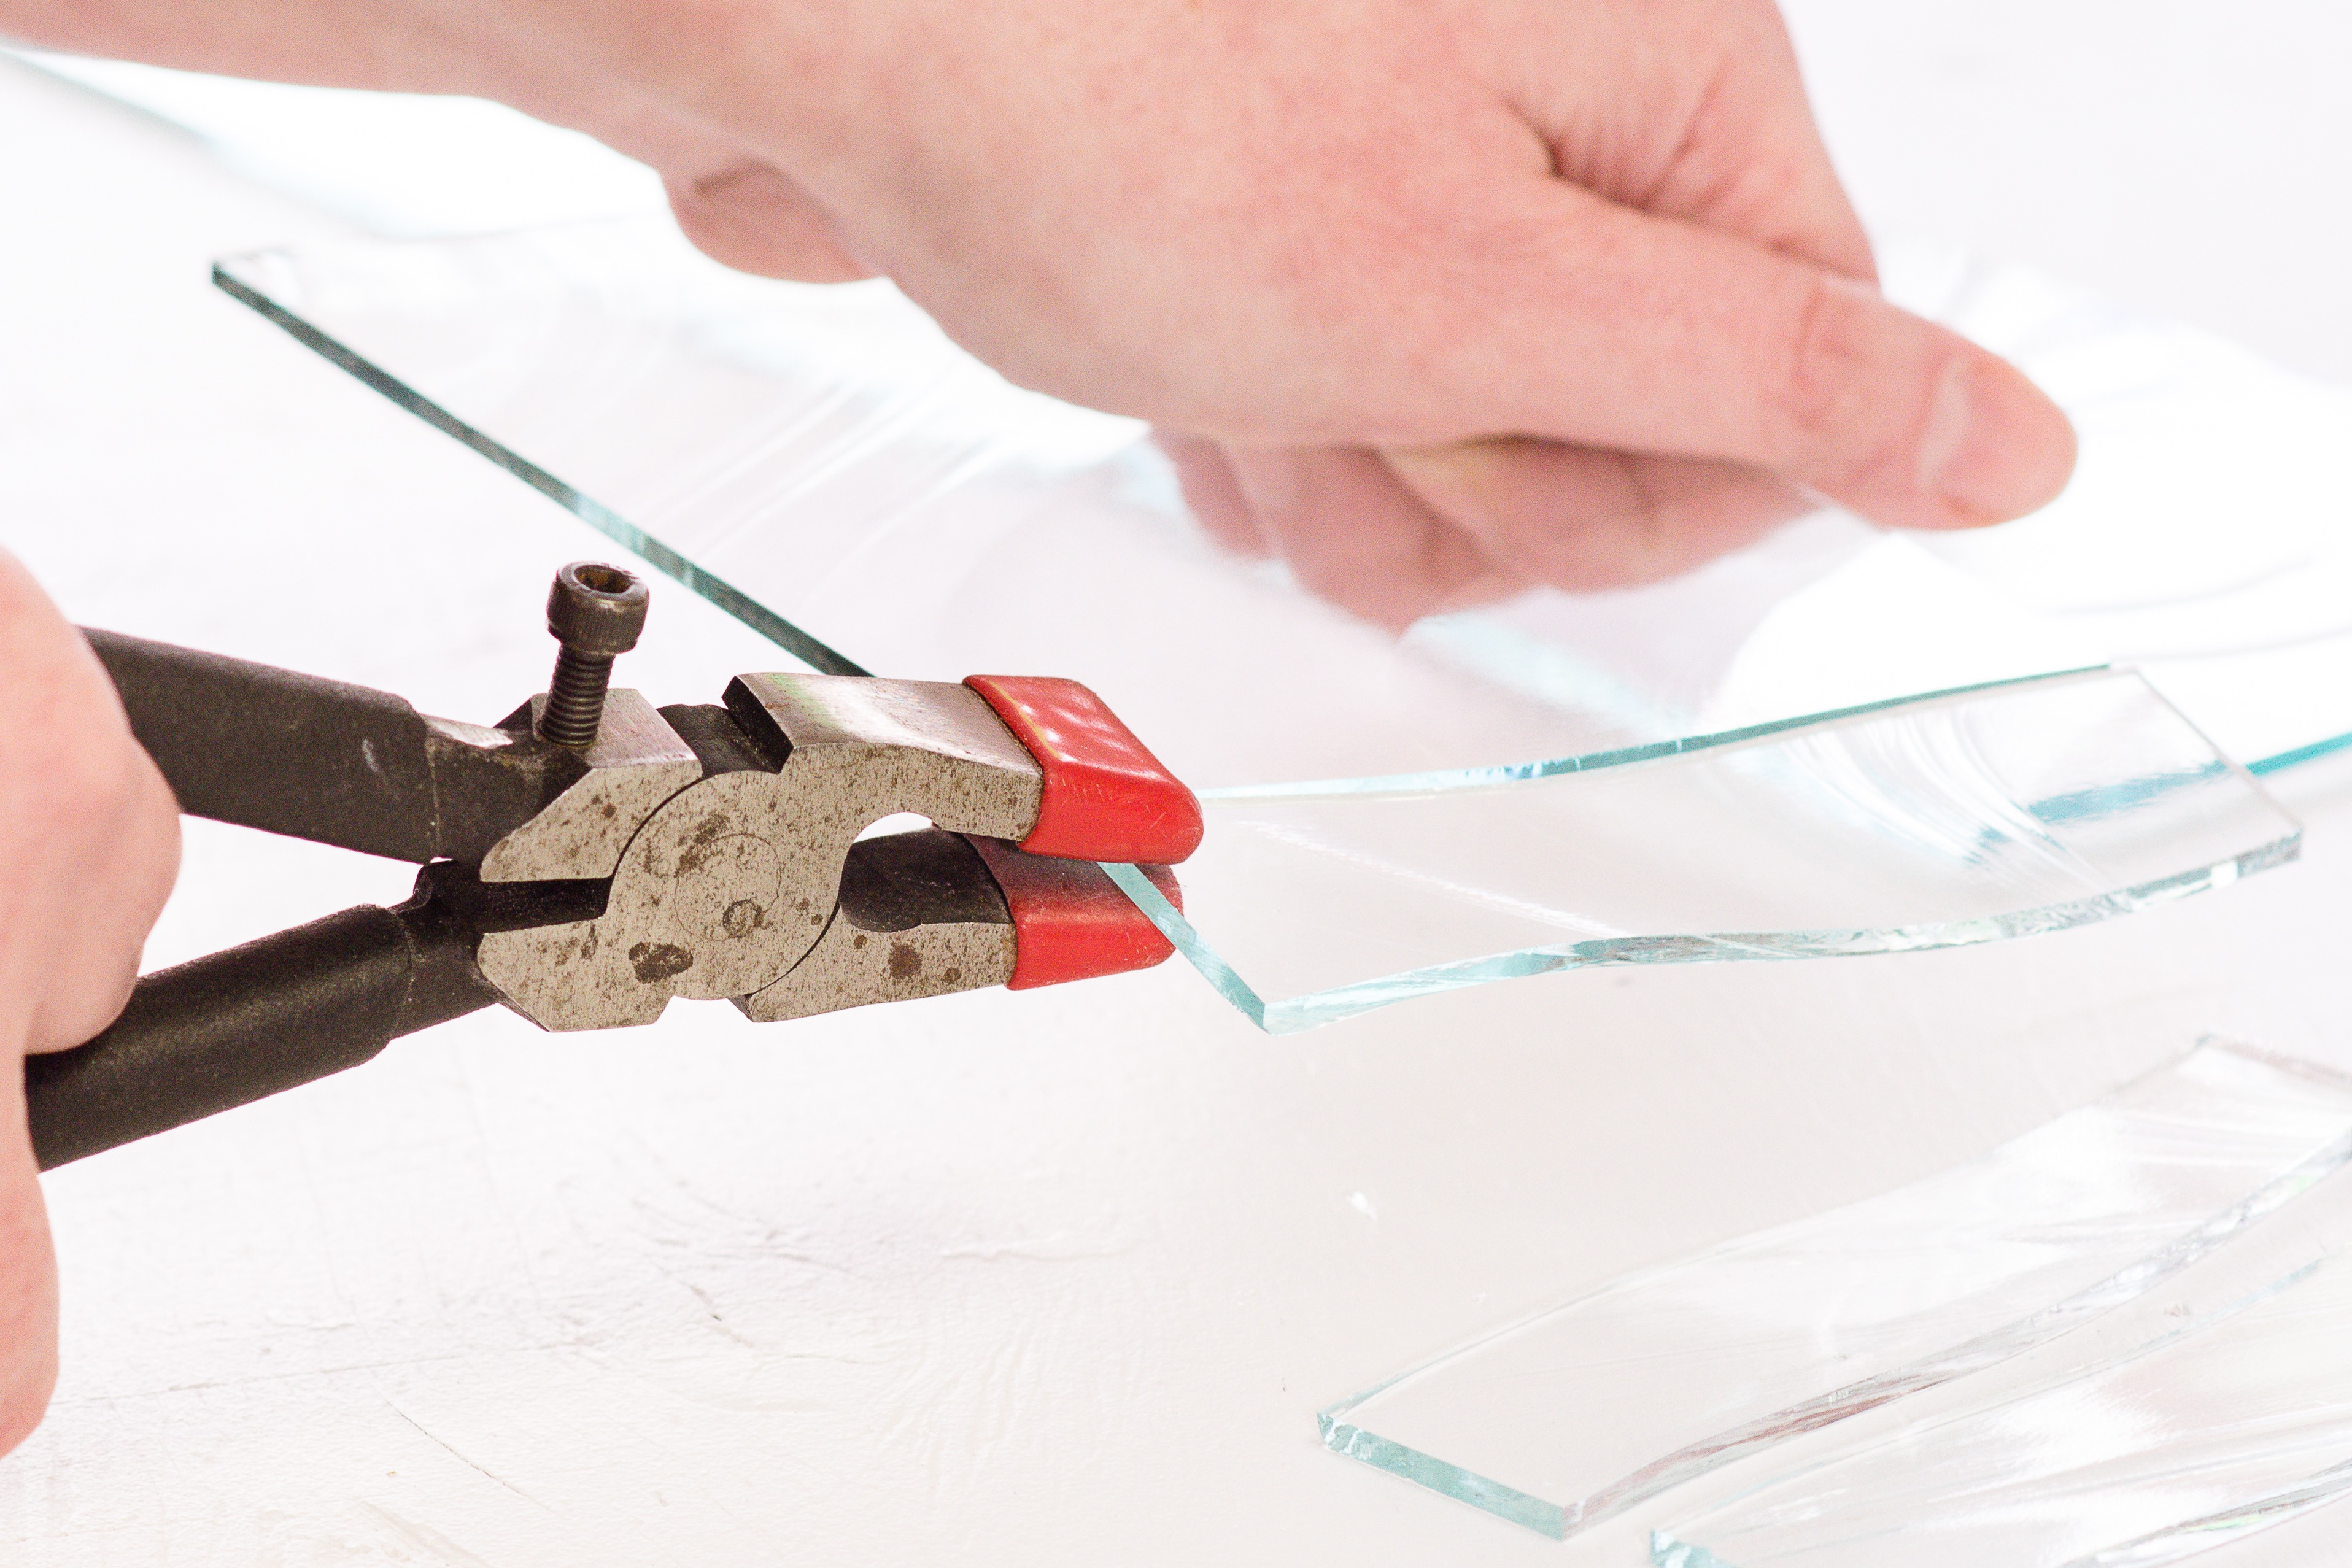 14 Strategies To Improve Your Glass Cutting